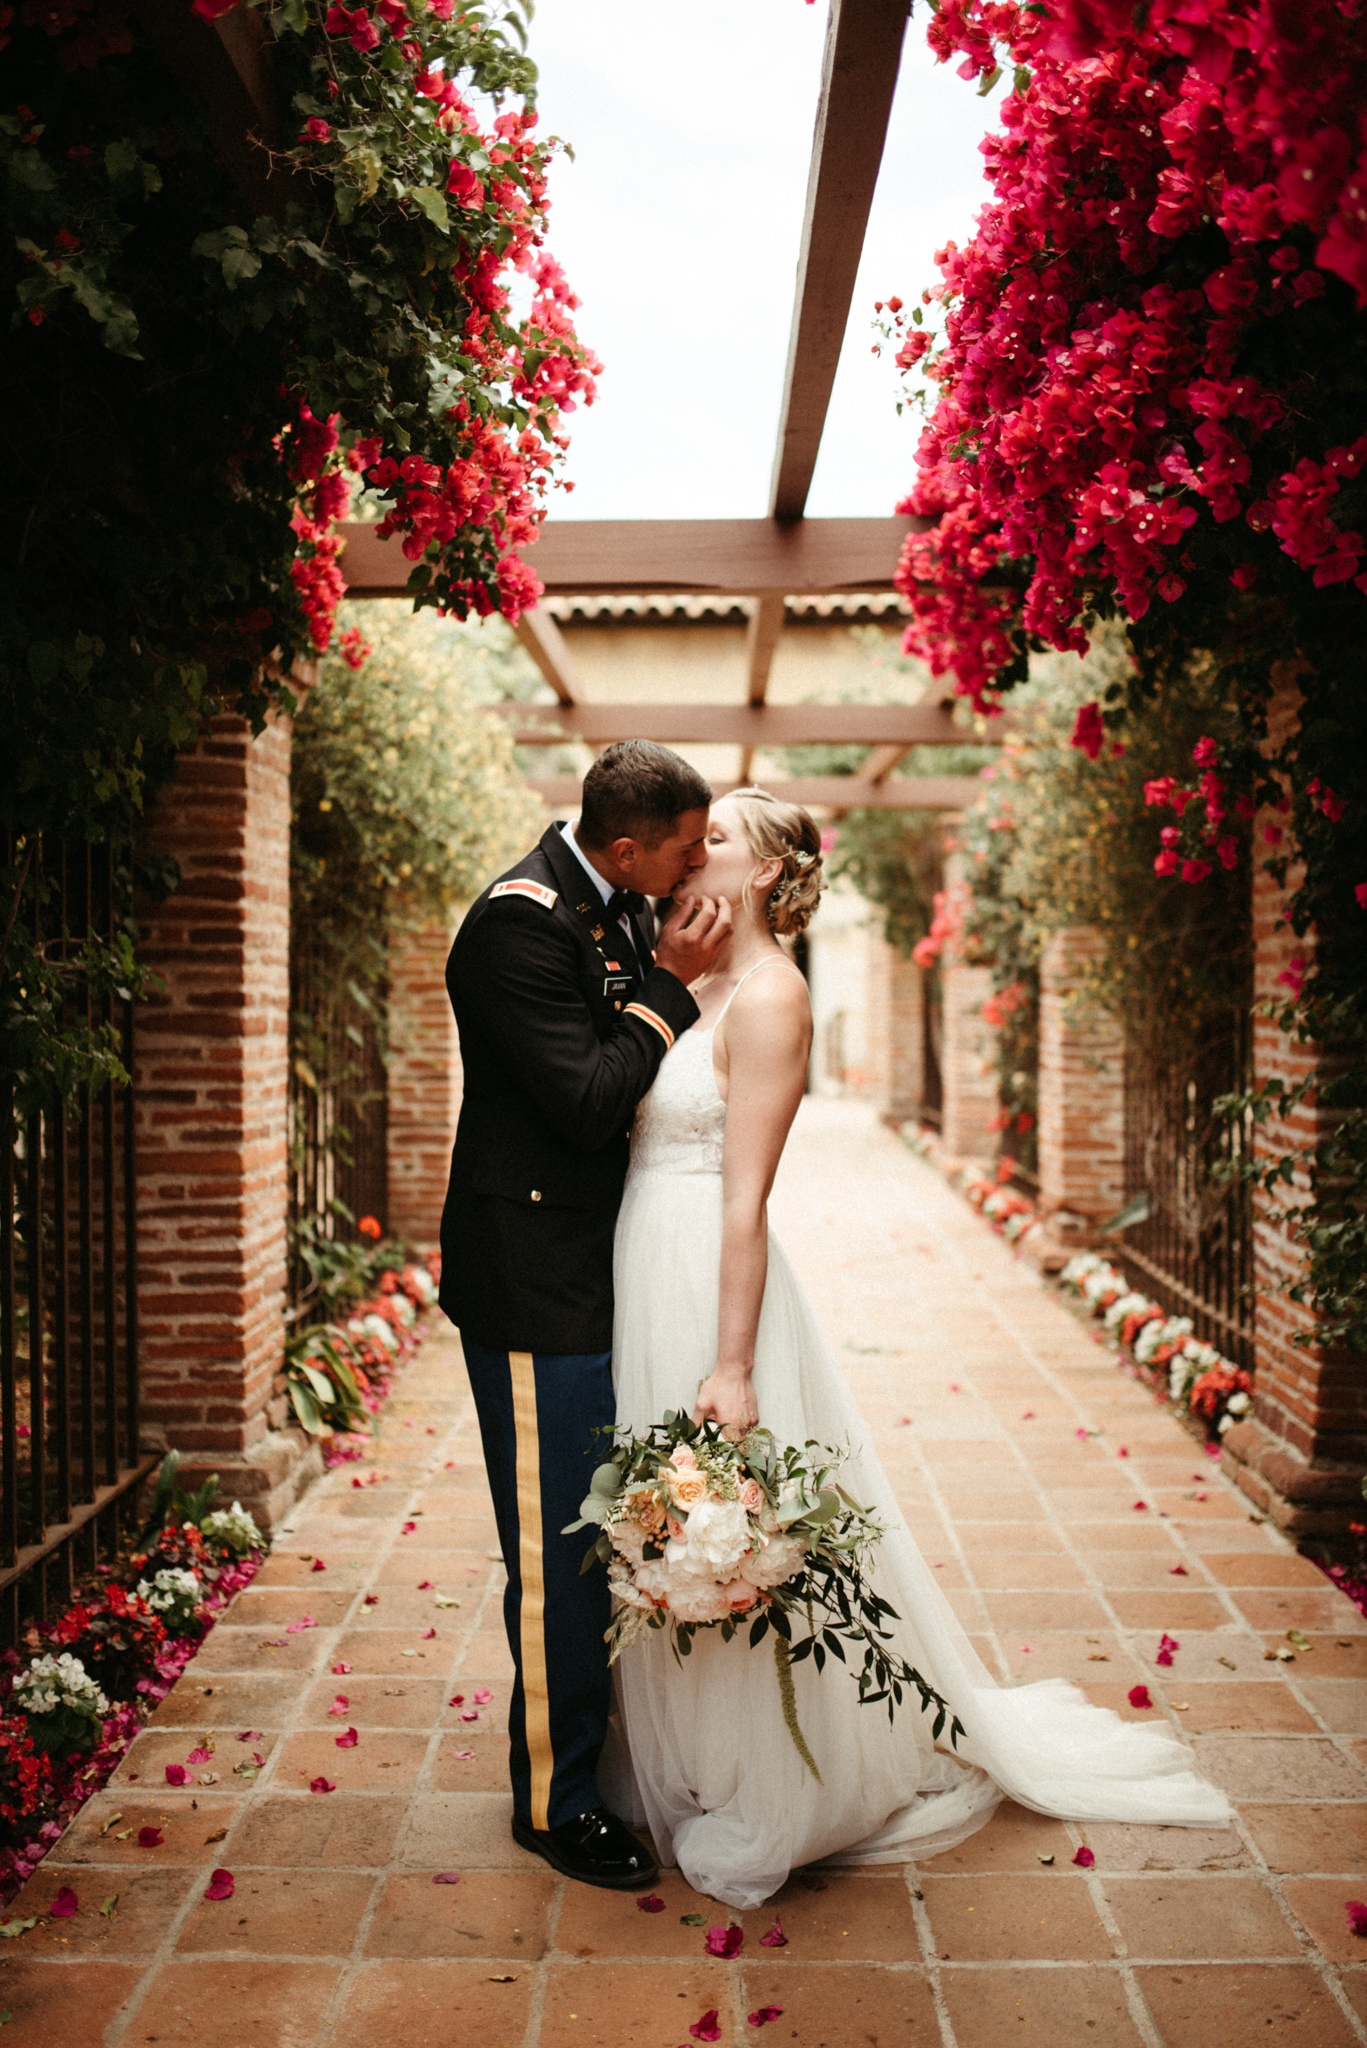 Zach and Rosalie - Franciscan Garden Wedding - San Juan Capistrano - The Mission - Southern California Wedding Photographer-5334.jpg